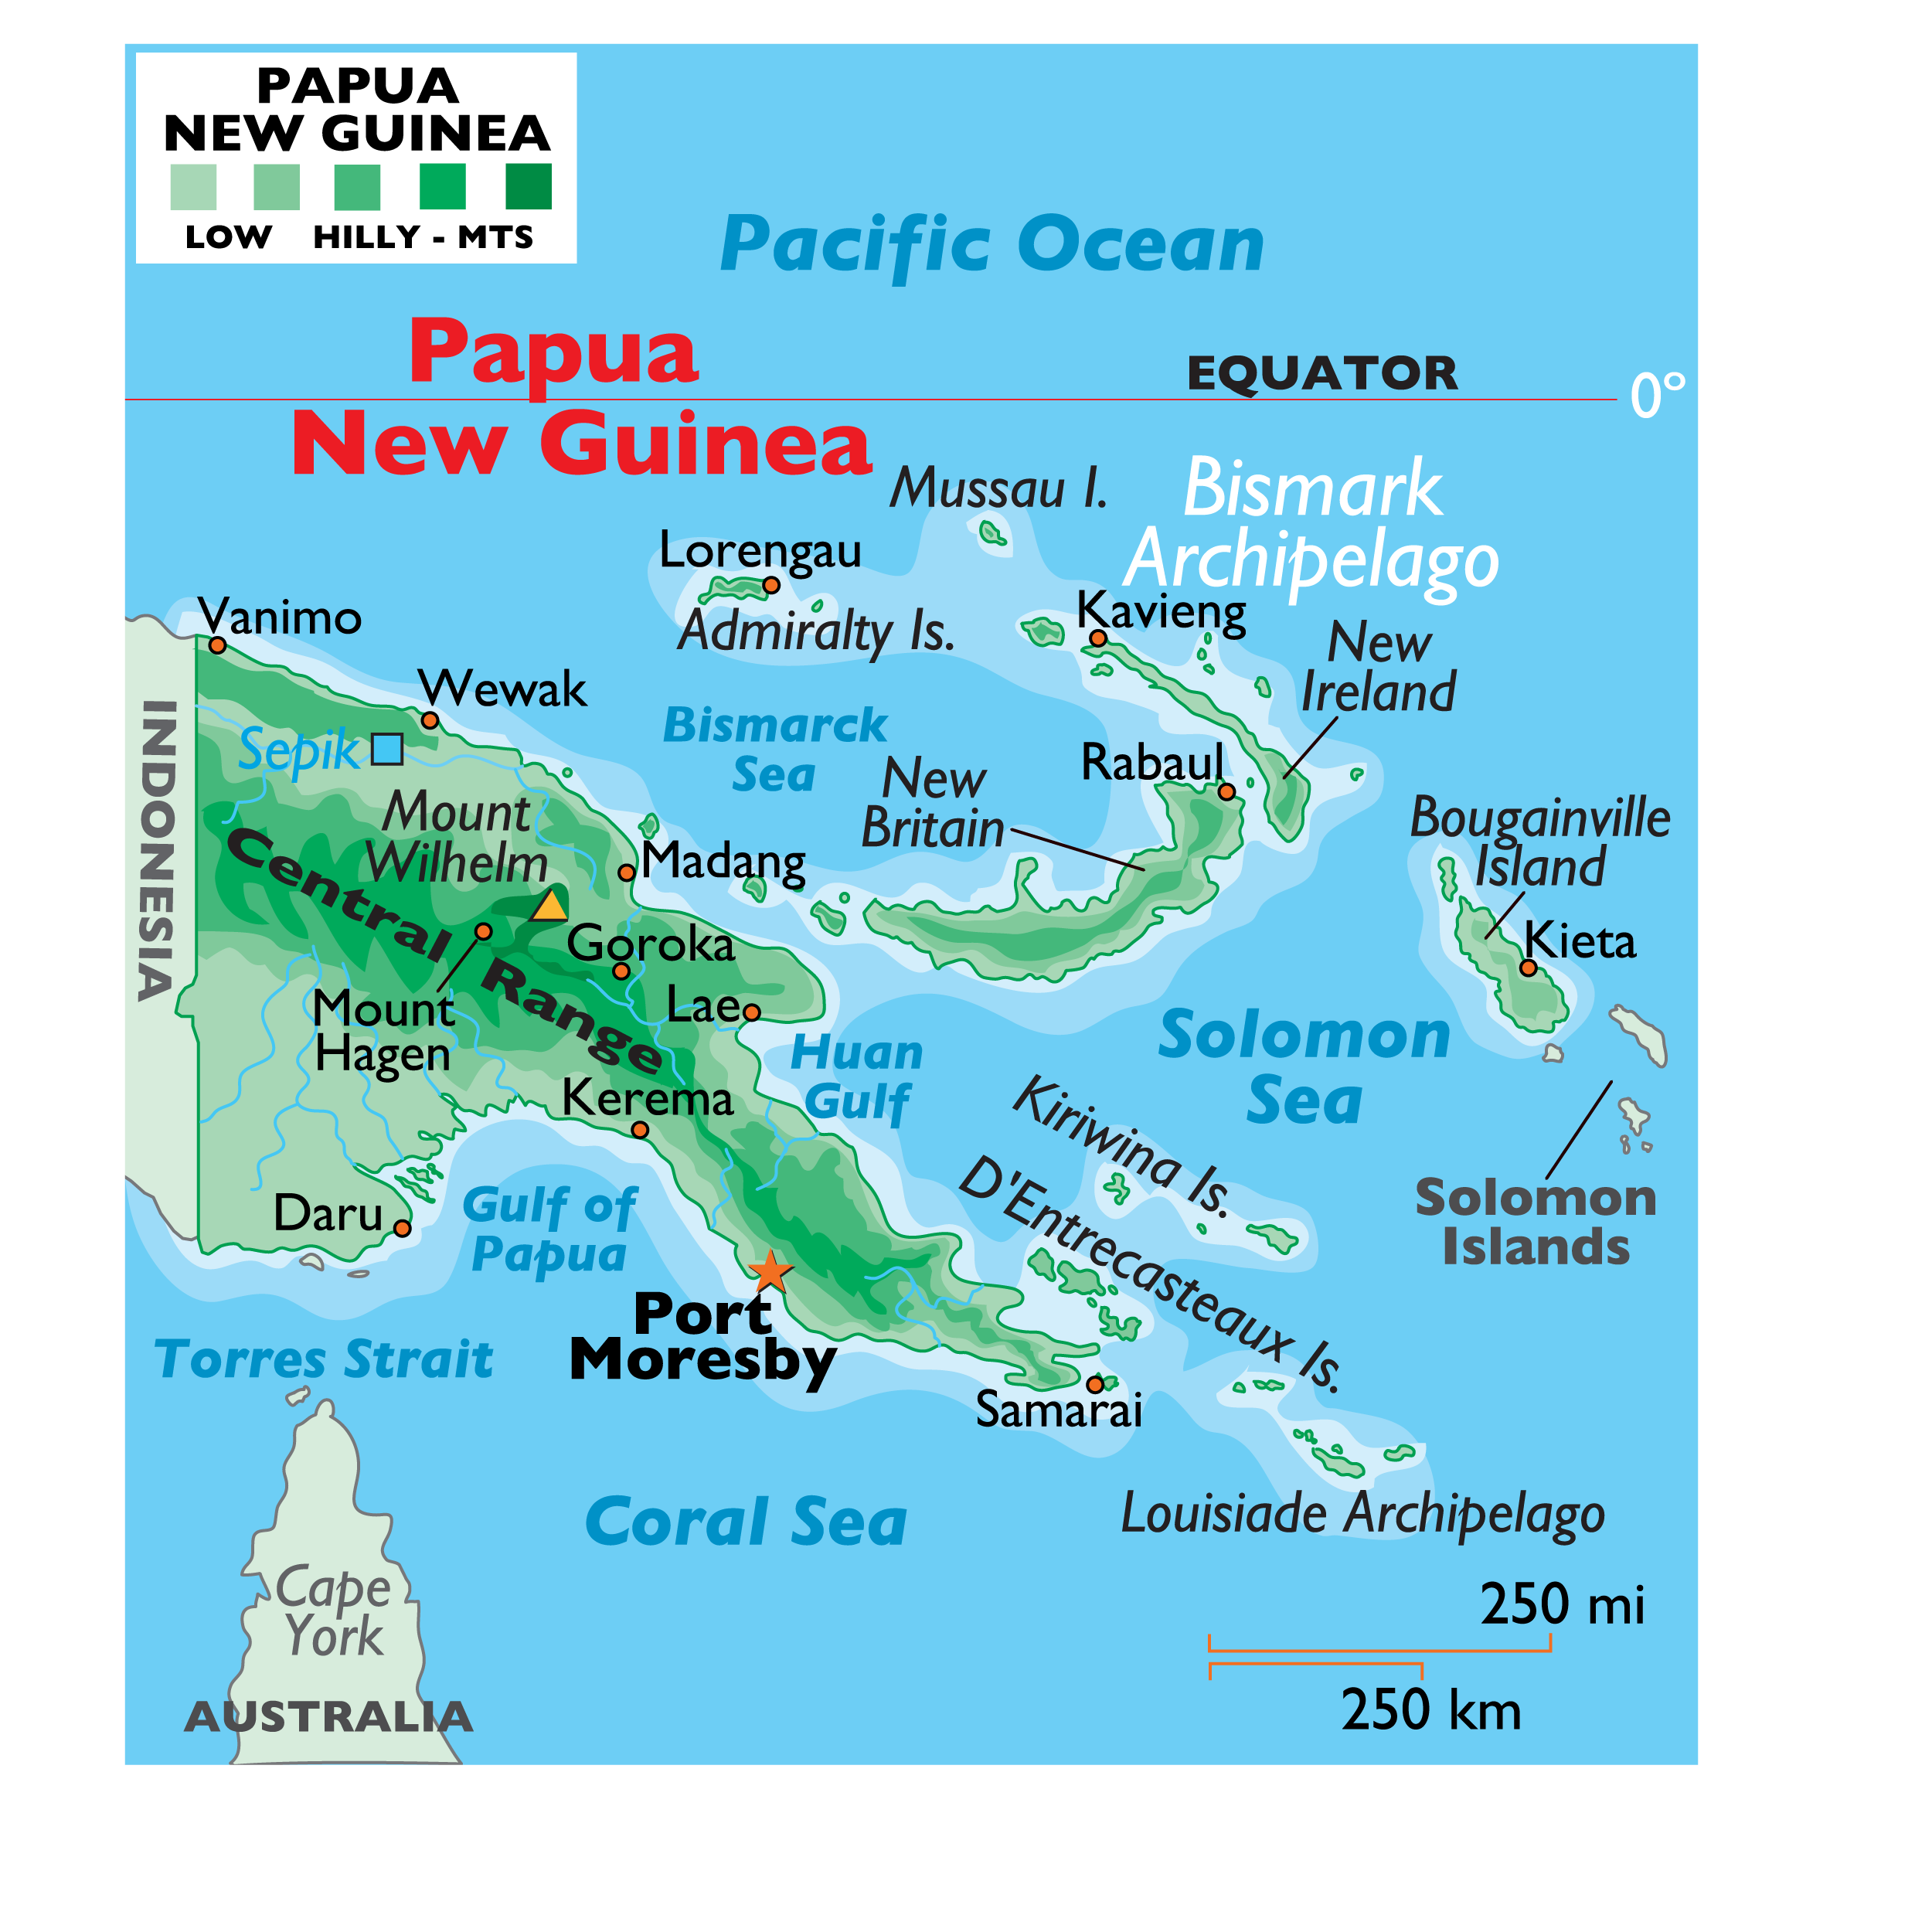 Physical Map of Papua New Guinea showing relief, mountains, major islands, surrounding seas and gulfs, and more.